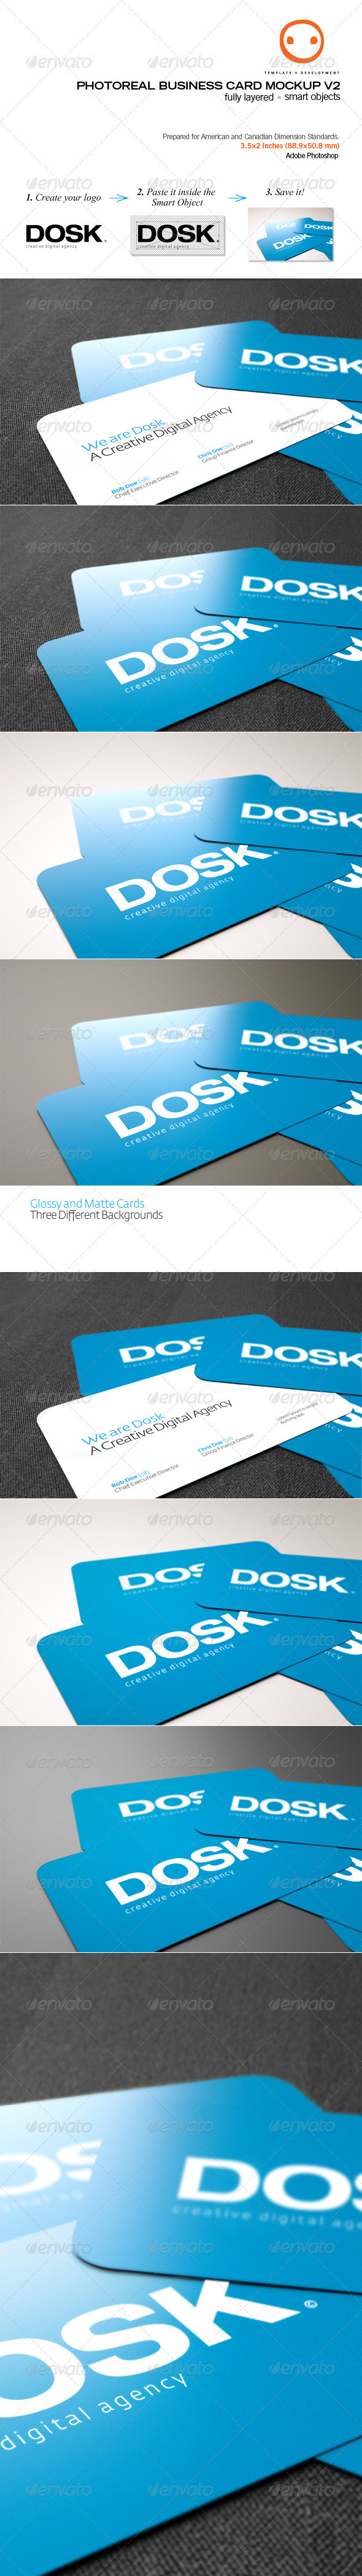 Photoreal Business Card Mockup V2 - Business Cards Print